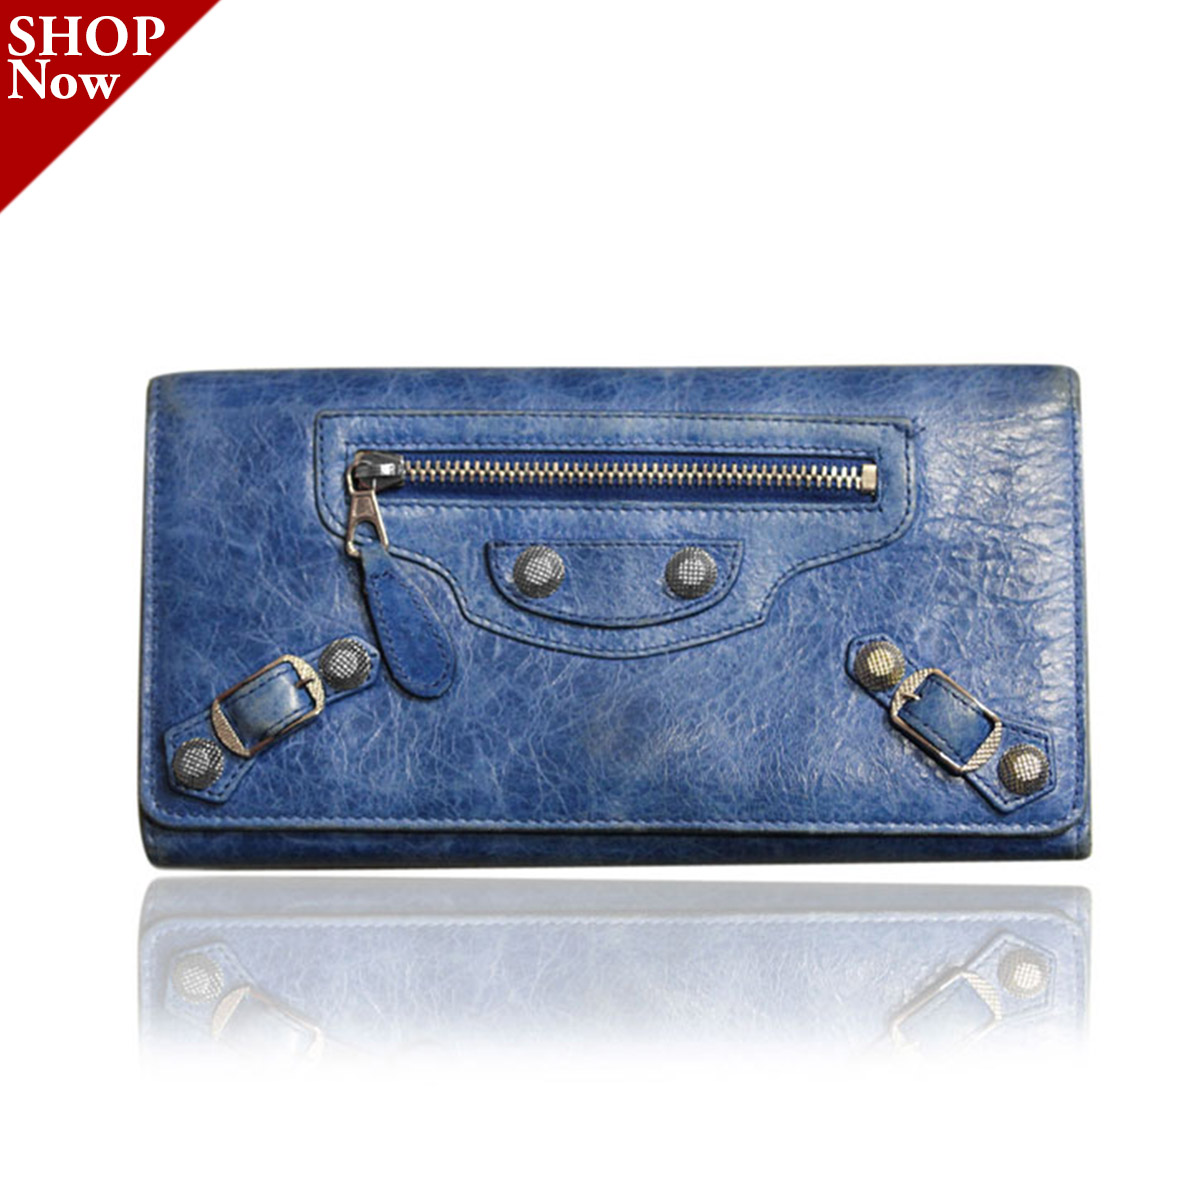 Balenciaga Blue Leather Long Stud Wallet Boca Raton